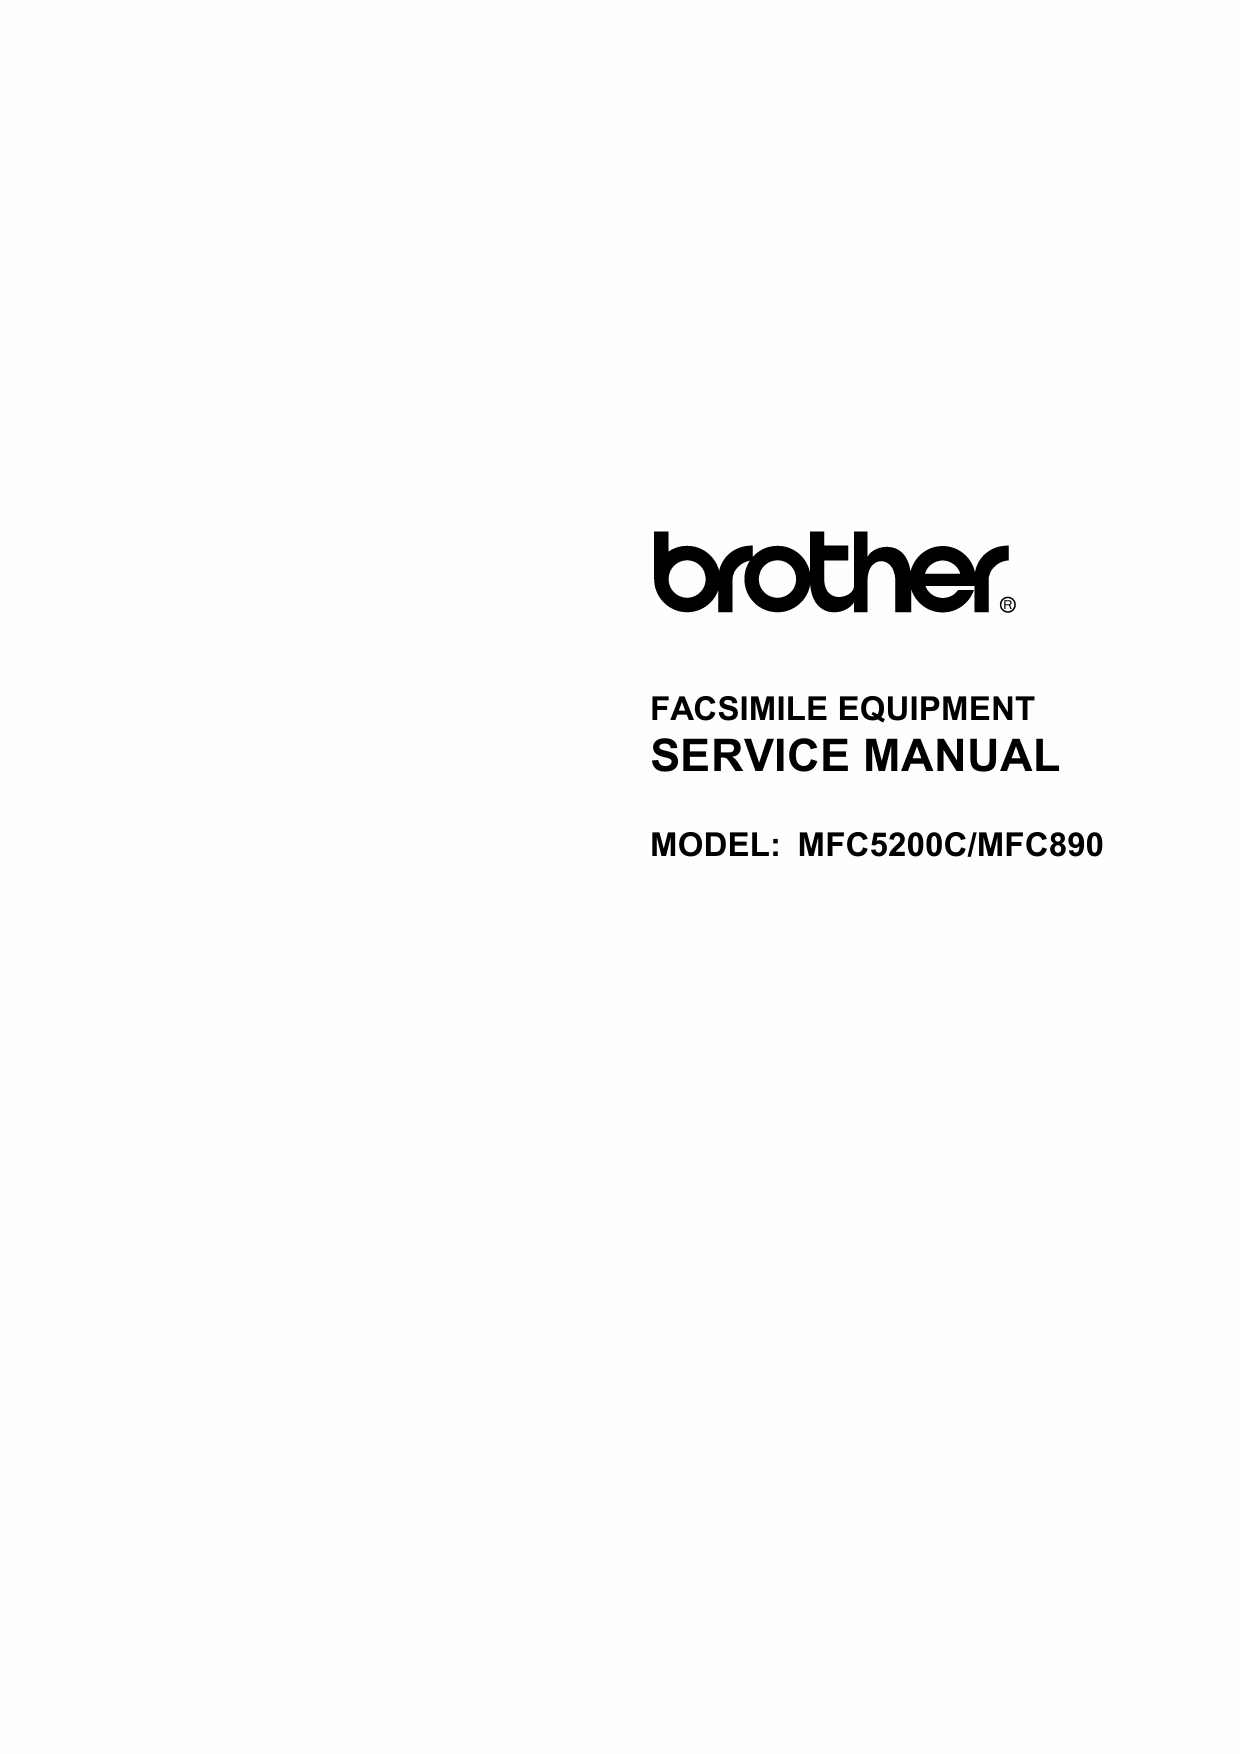 Brother MFC 890 5200C Service Manual-1